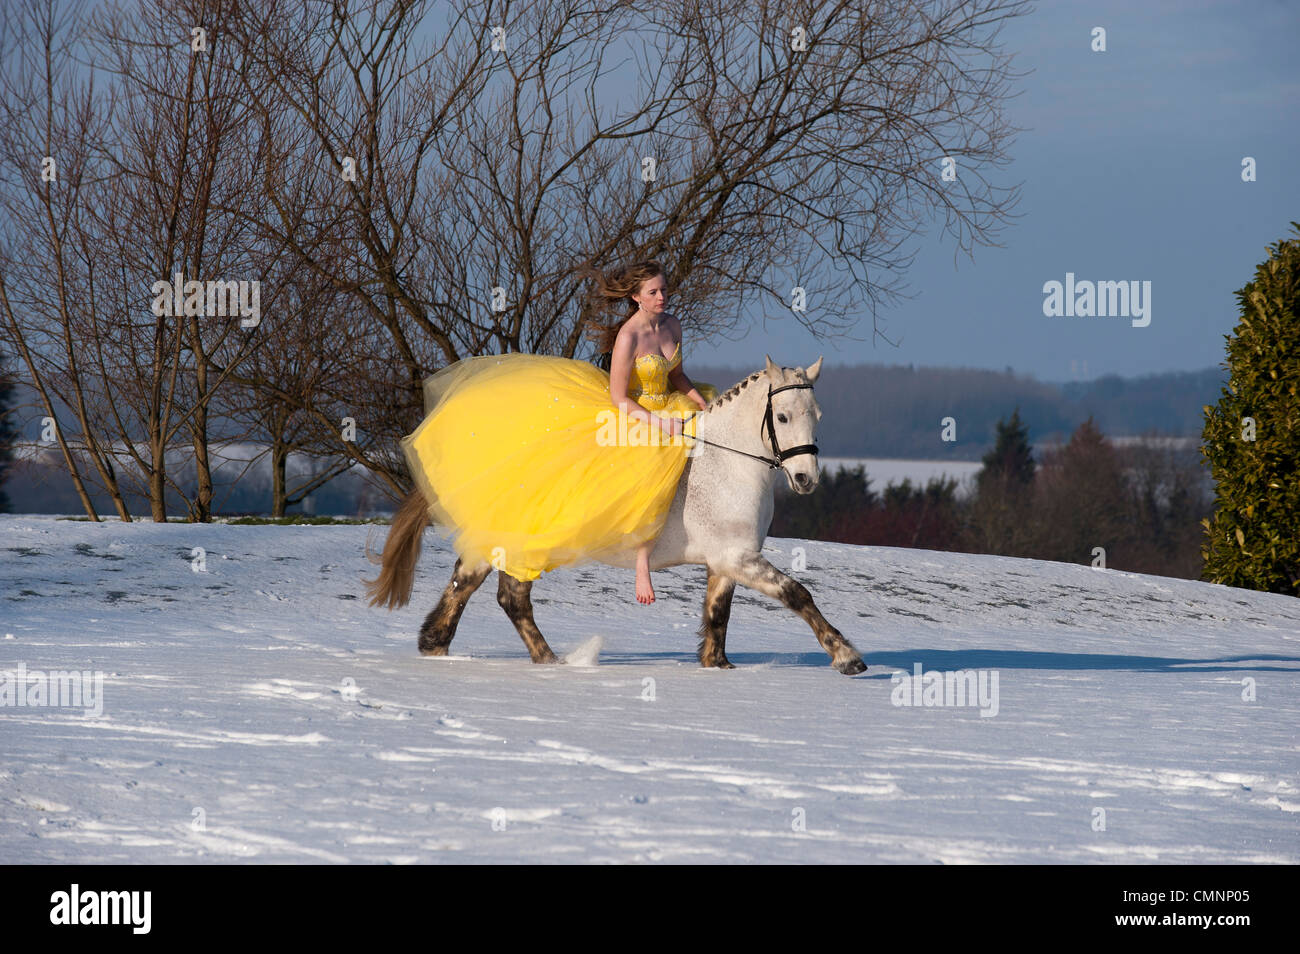 A young woman rides a white horse across a snowy landscape wearing a yellow prom dress. - Stock Image